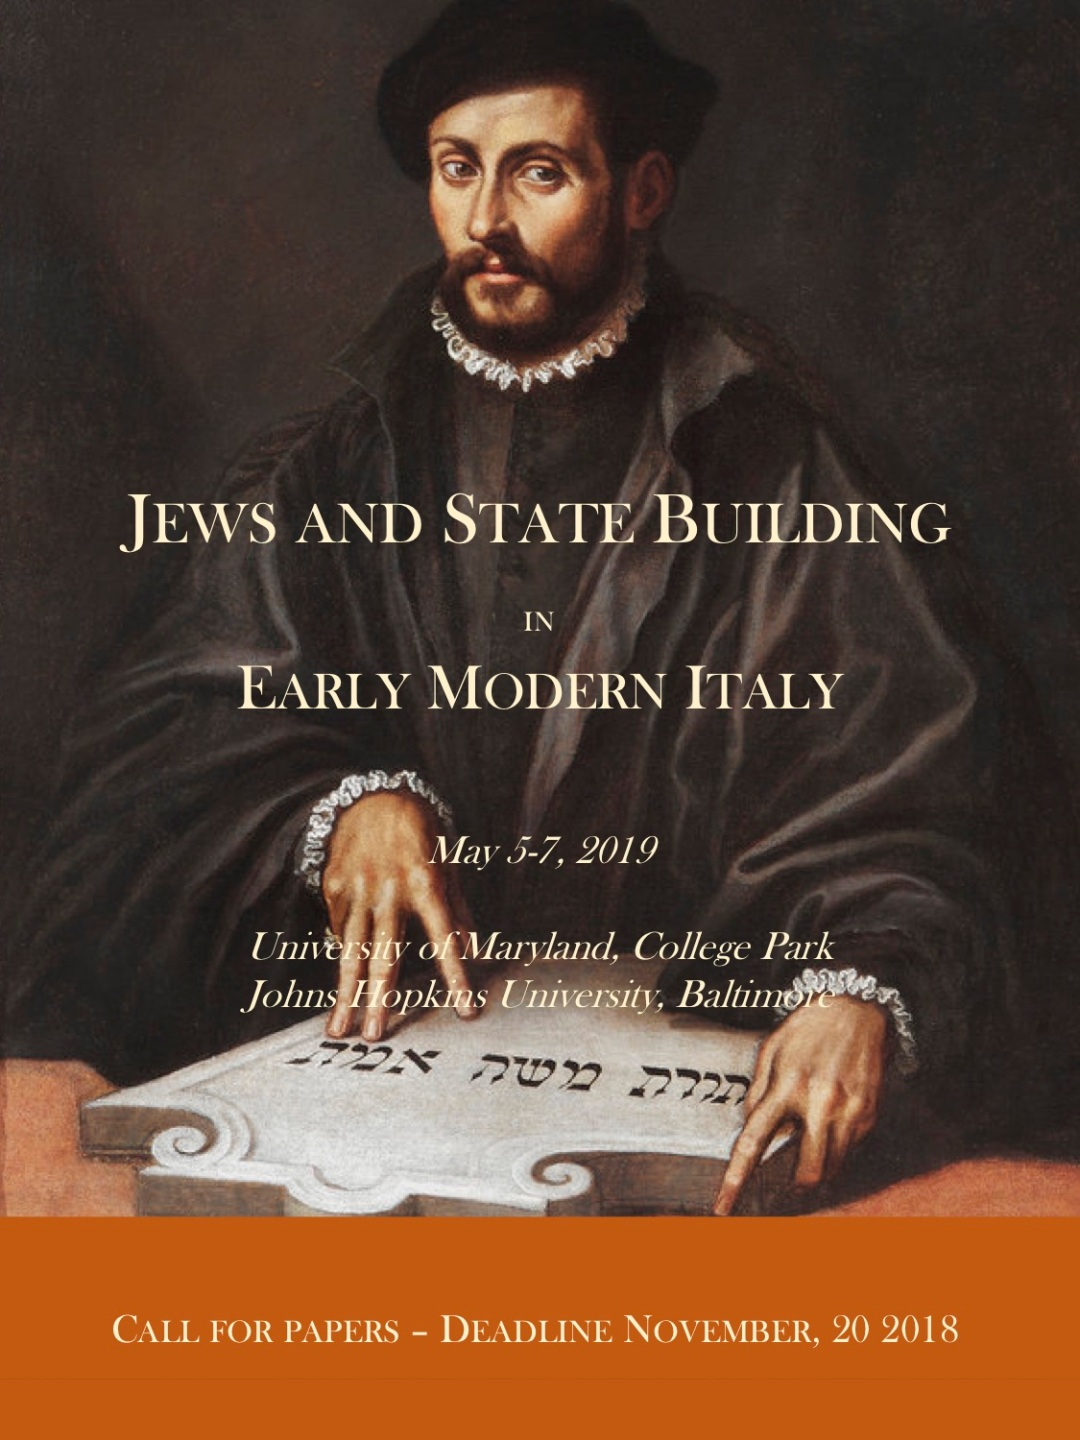 Jews and State Building CFP, deadline Nov. 20